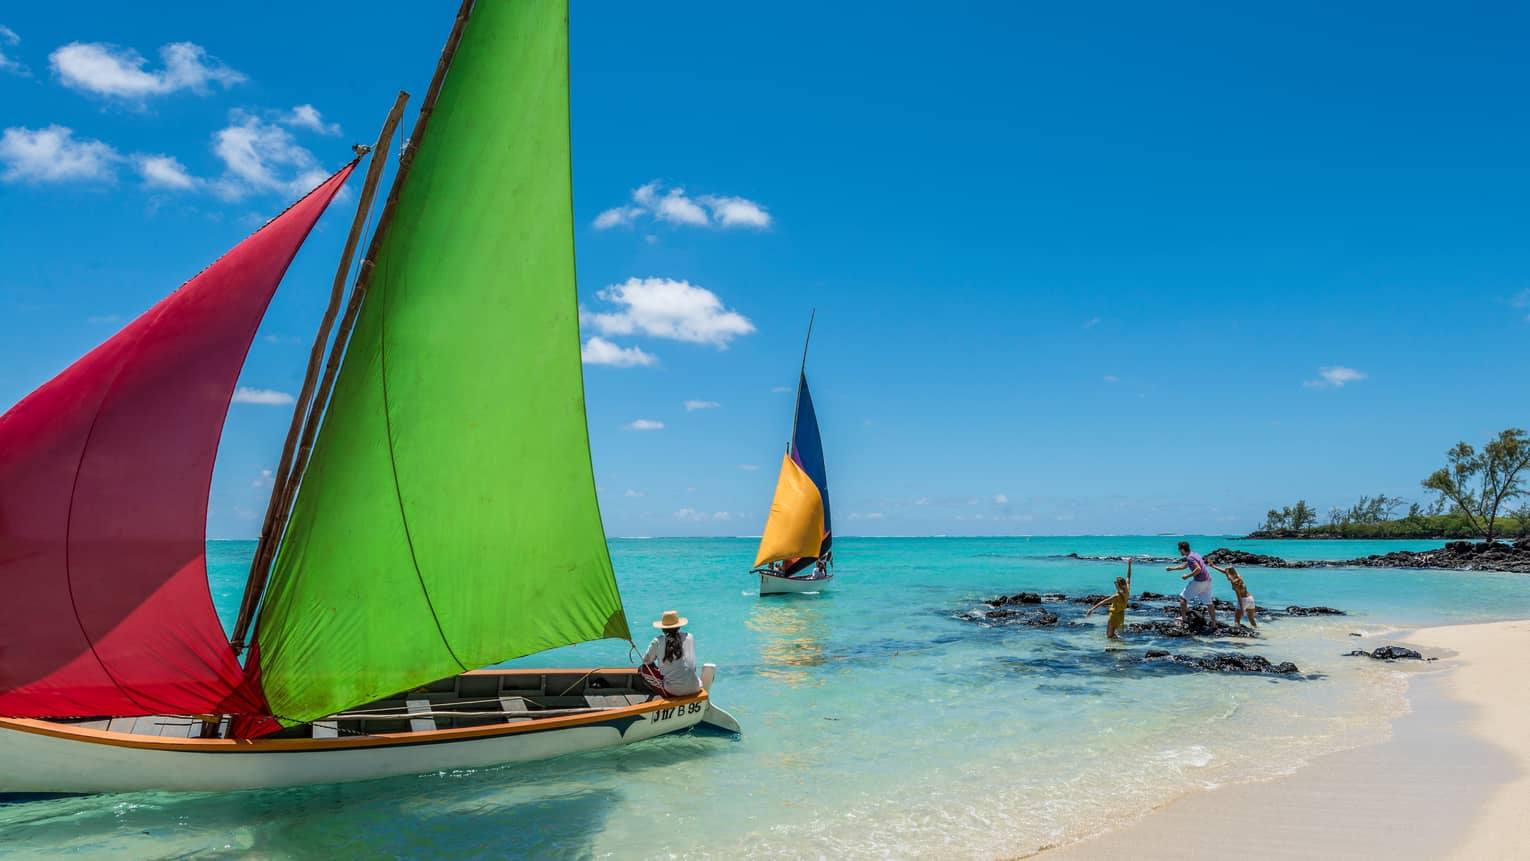 Family plays on beach, rocks in front of two sailboats with colourful sails